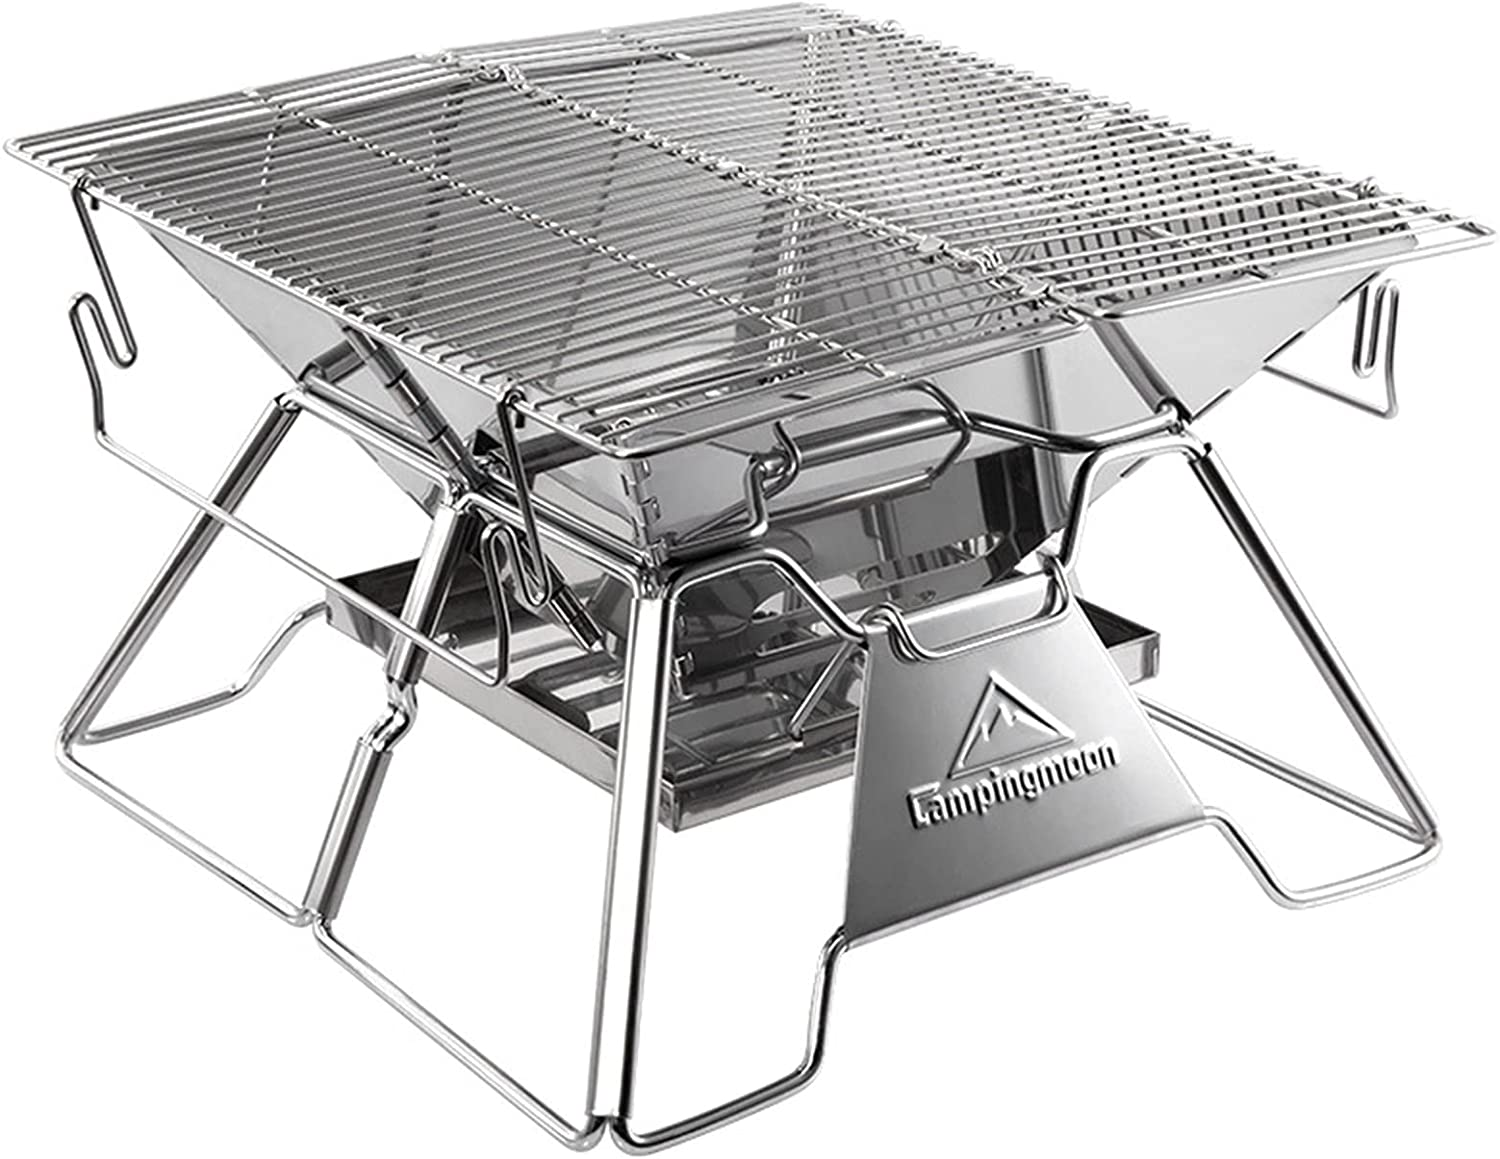 UAAA Portable Super intense SALE Folding Outdoor BBQ Stove Camping Stov Ranking TOP10 Grill